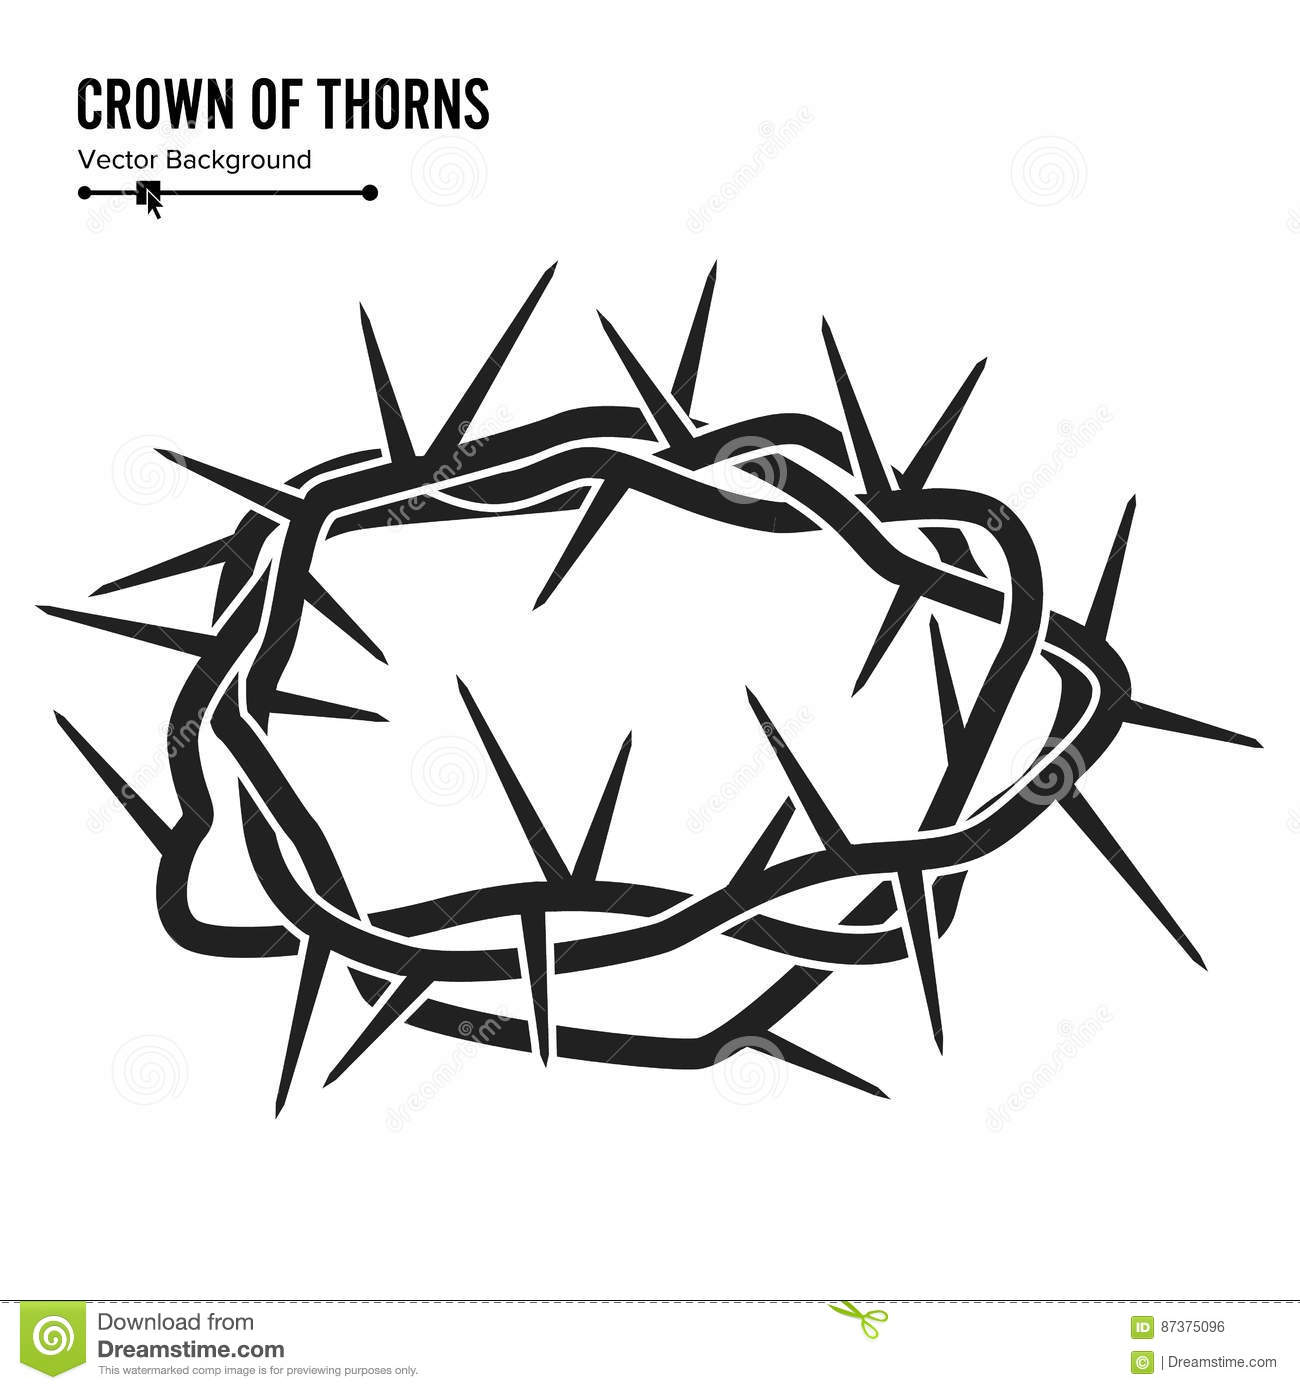 of thorns illustration - photo #7